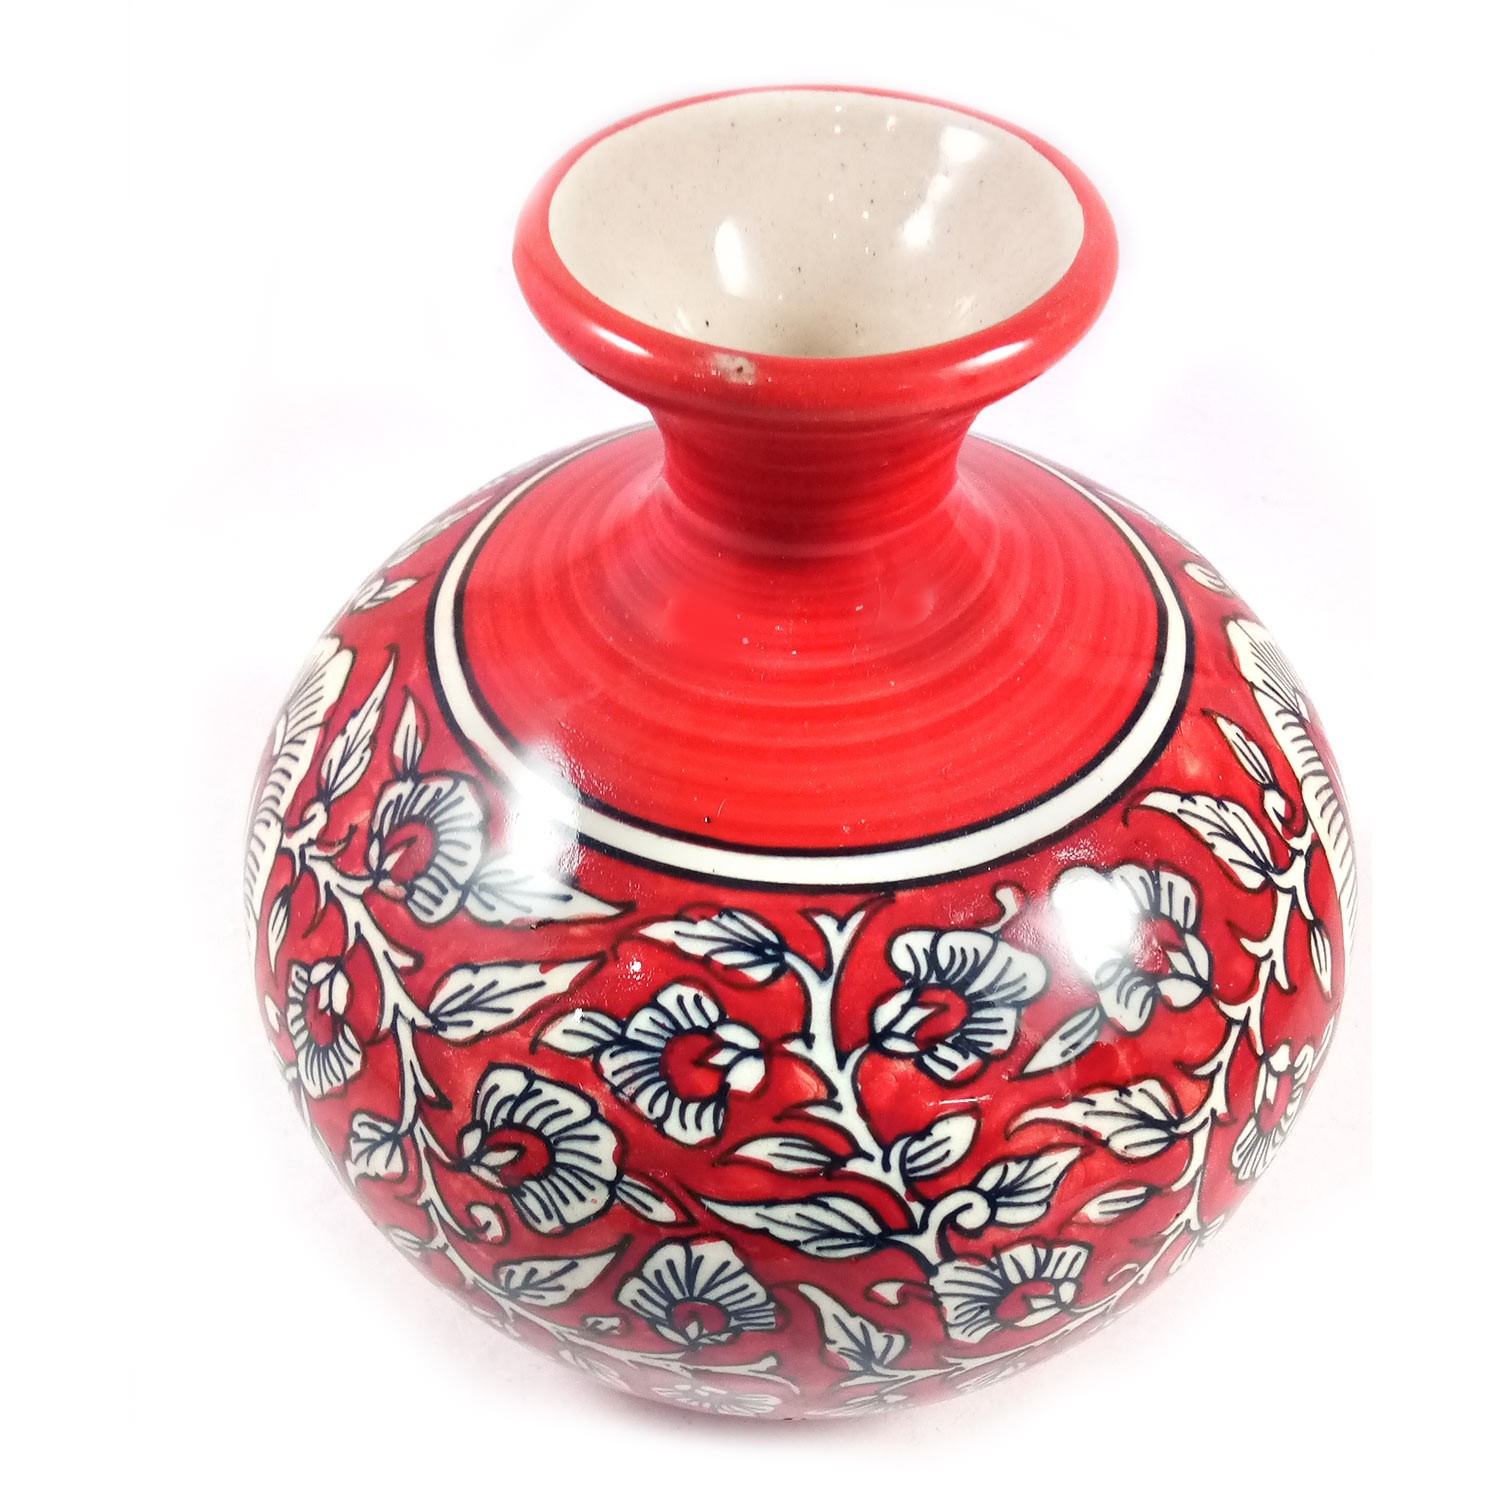 Handmade Red with White Flower Painting Vase Red by awarded artisans from UP